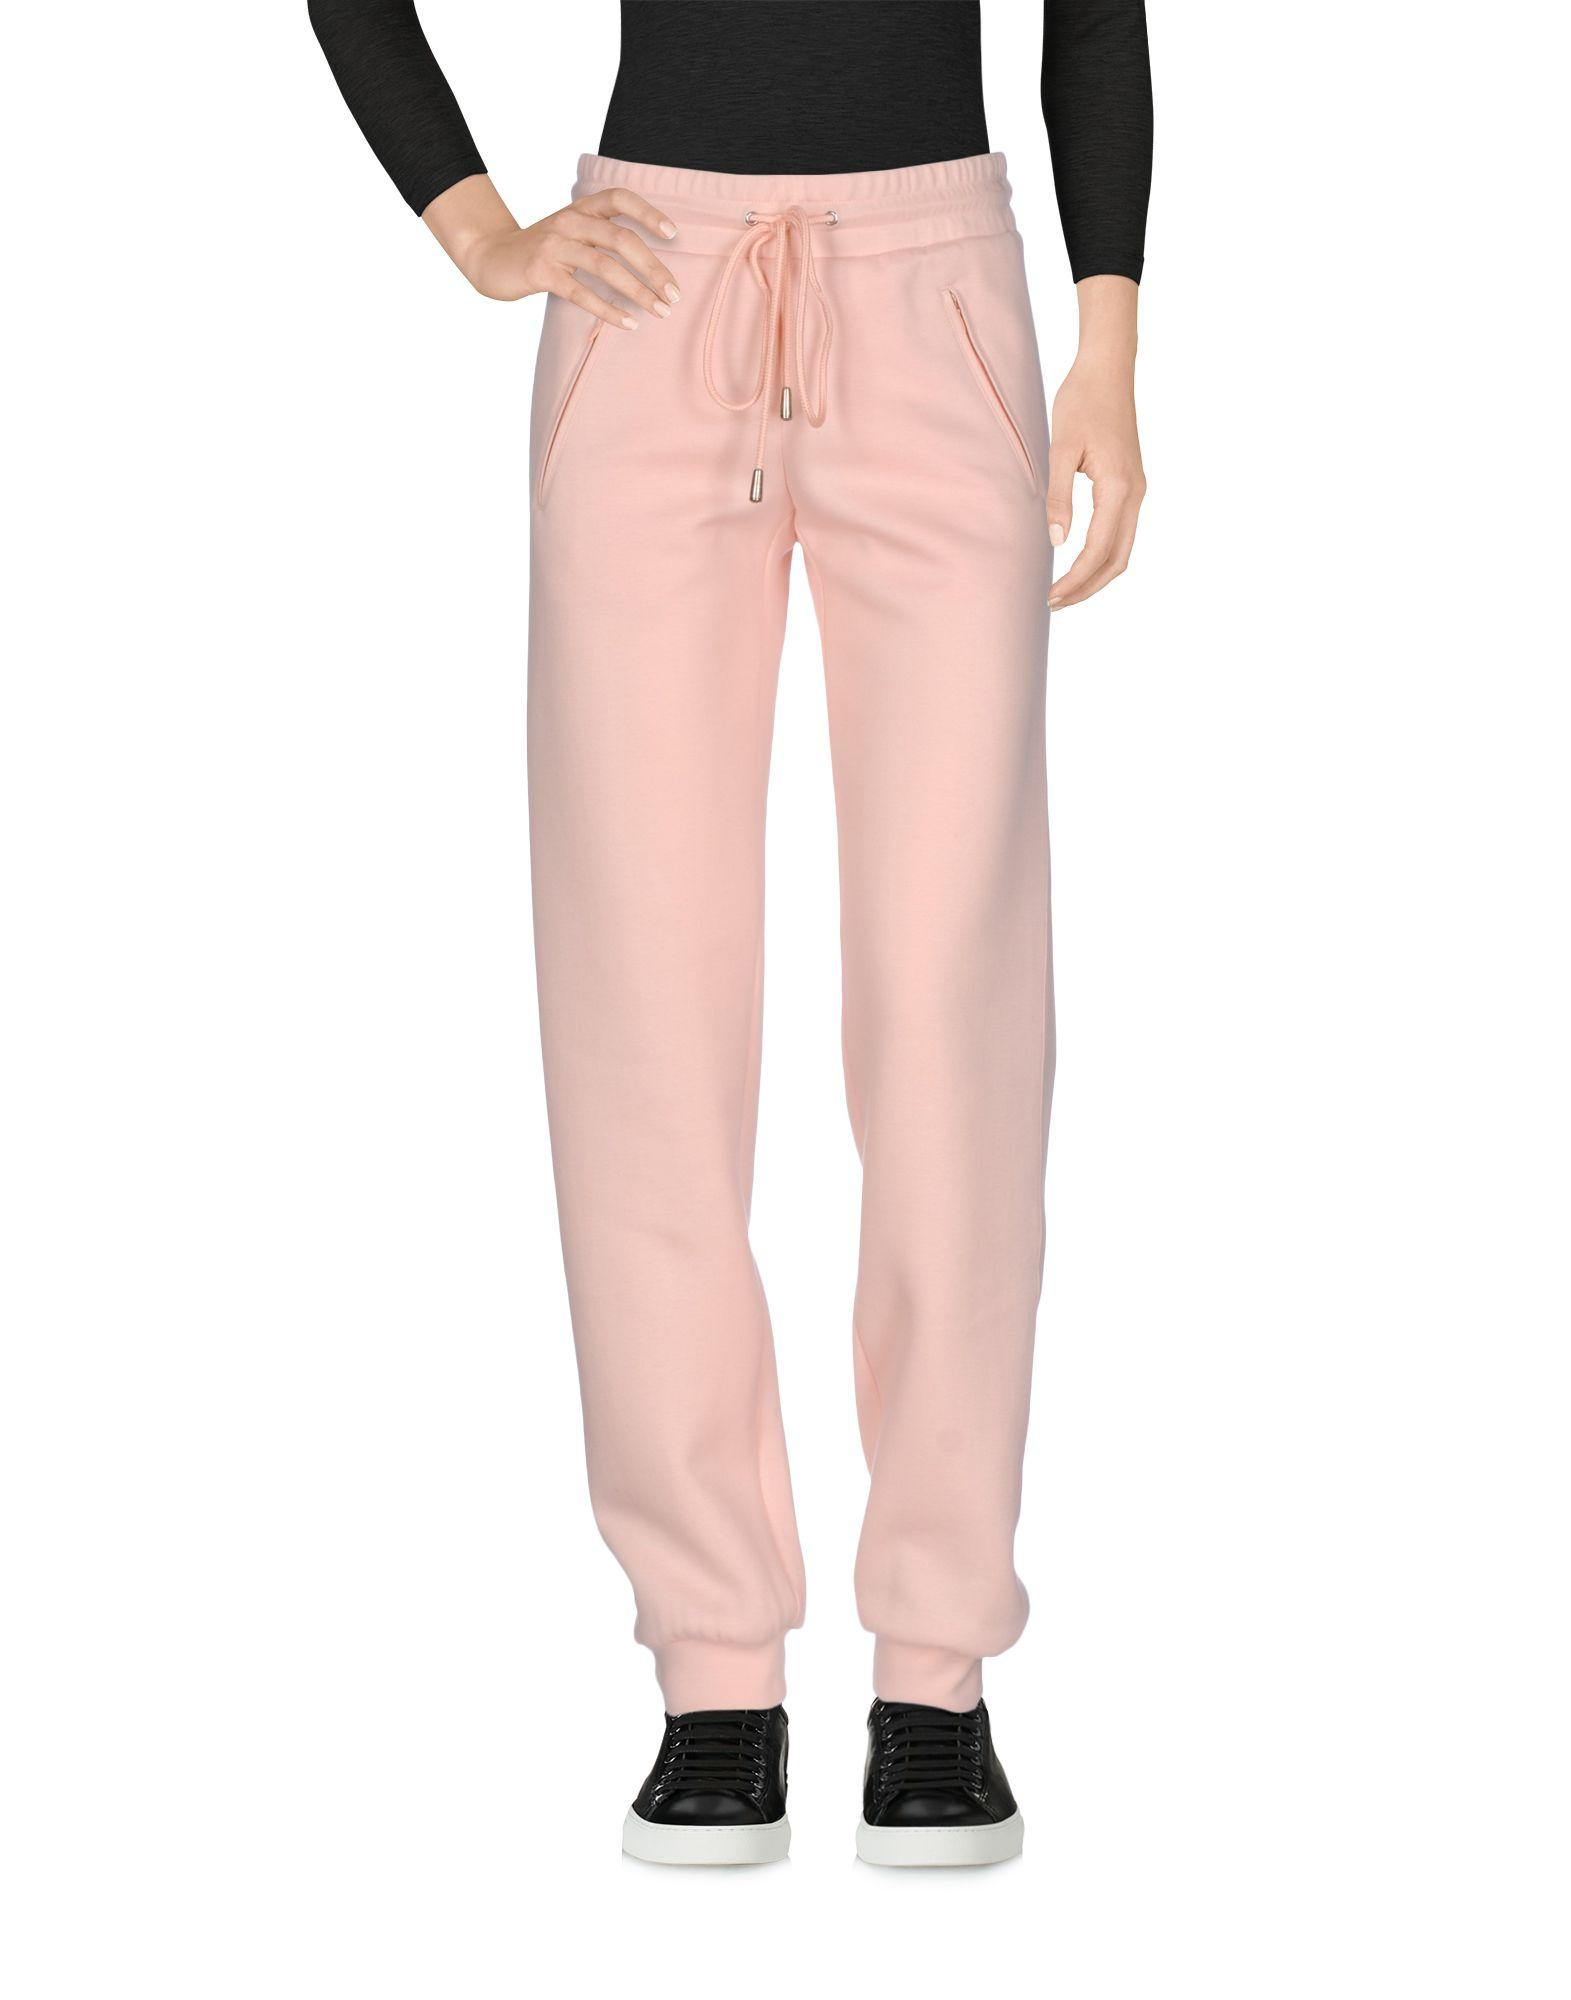 Moschino Cheap And Chic Casual Pants In Pink